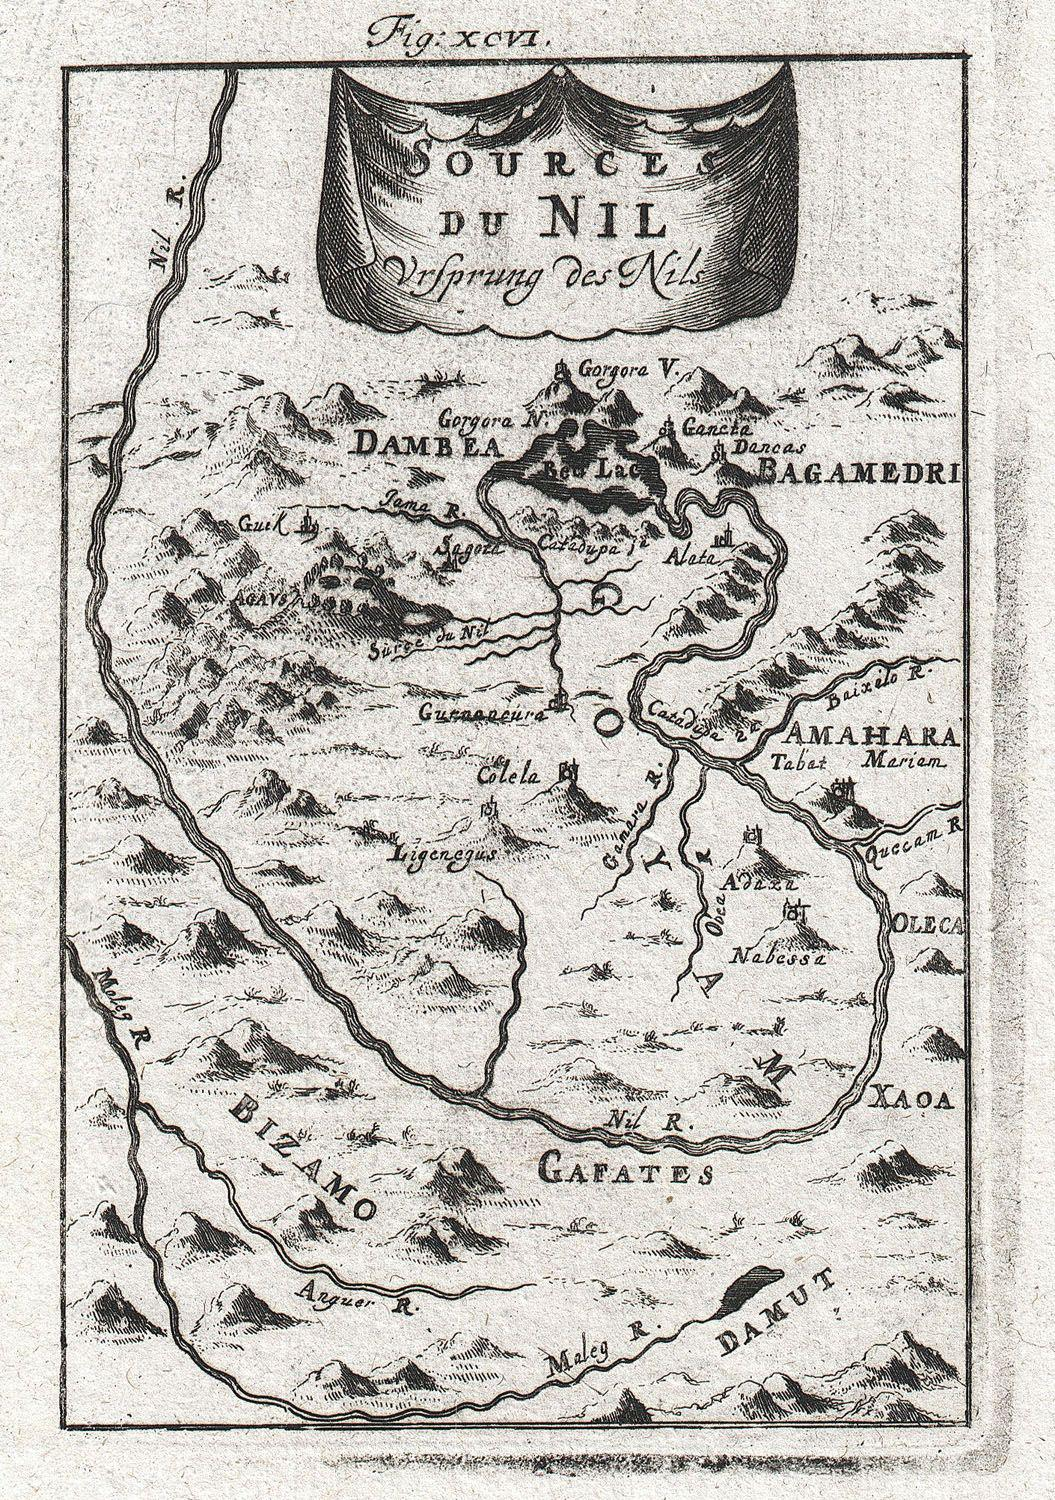 File:1719 Mallet Map of the Source of the Nile, Ethiopia (Abyssinia)